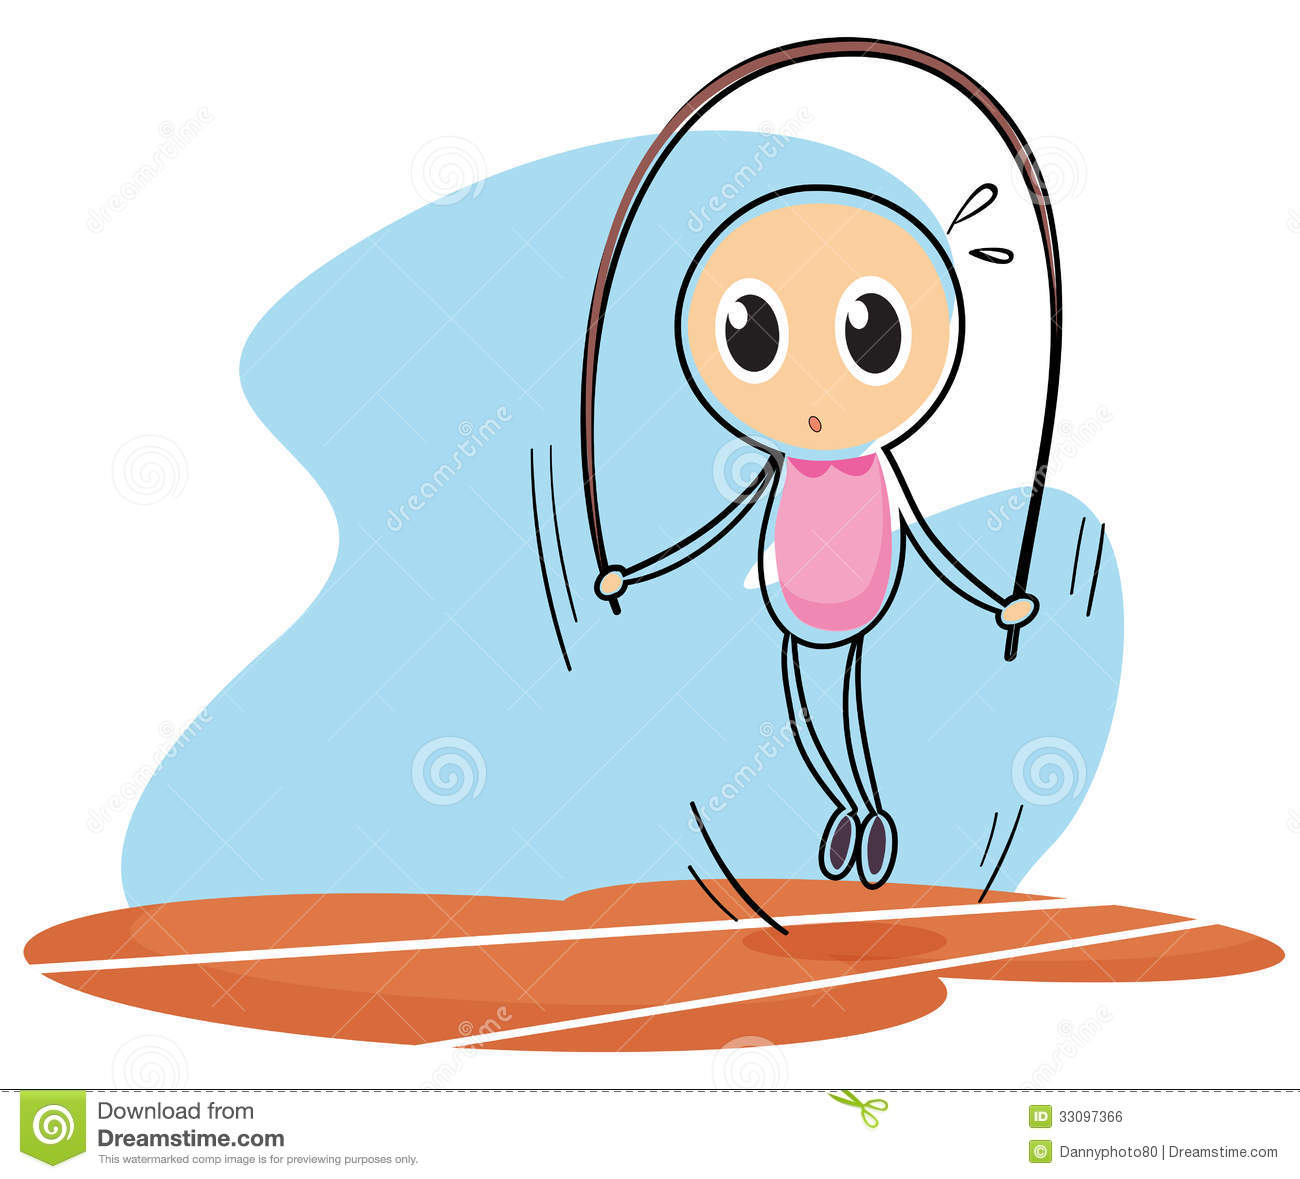 Clipart Jump Rope No Backround.